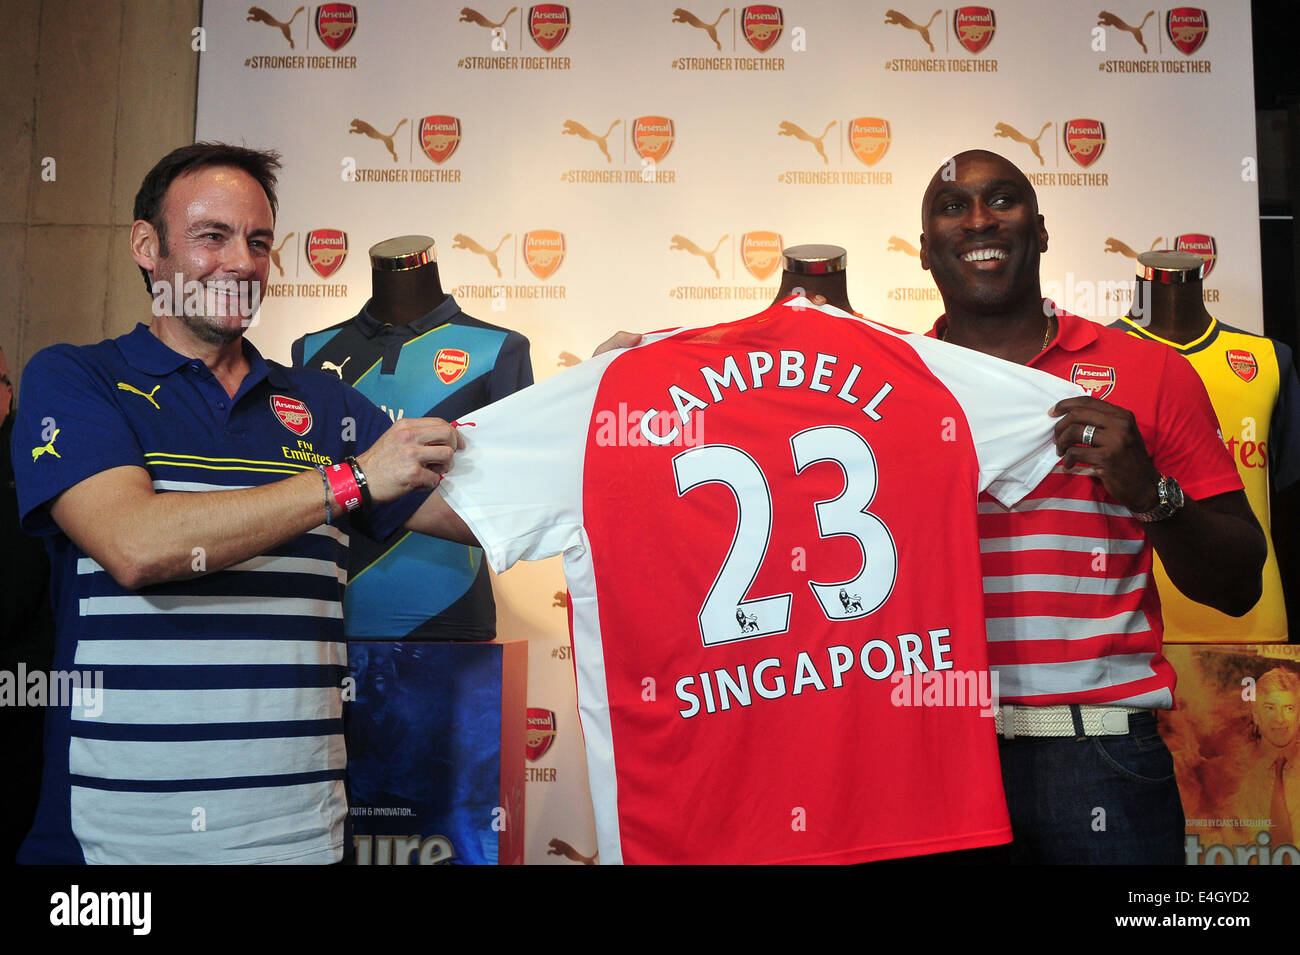 Singapore. 11th July, 2014. Former Arsenal player Sol Campbell (R) attends the Arsenal's new kit launch in Singapore, - Stock Image